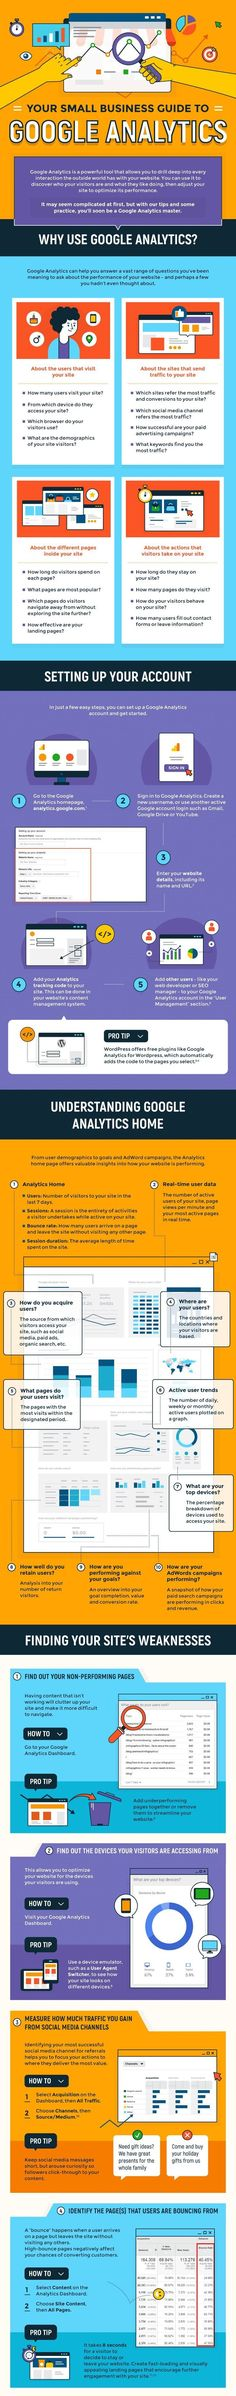 A Small-Business Guide to Google Analytics (Infographic) Becky|1PamperQueen|Couture2627